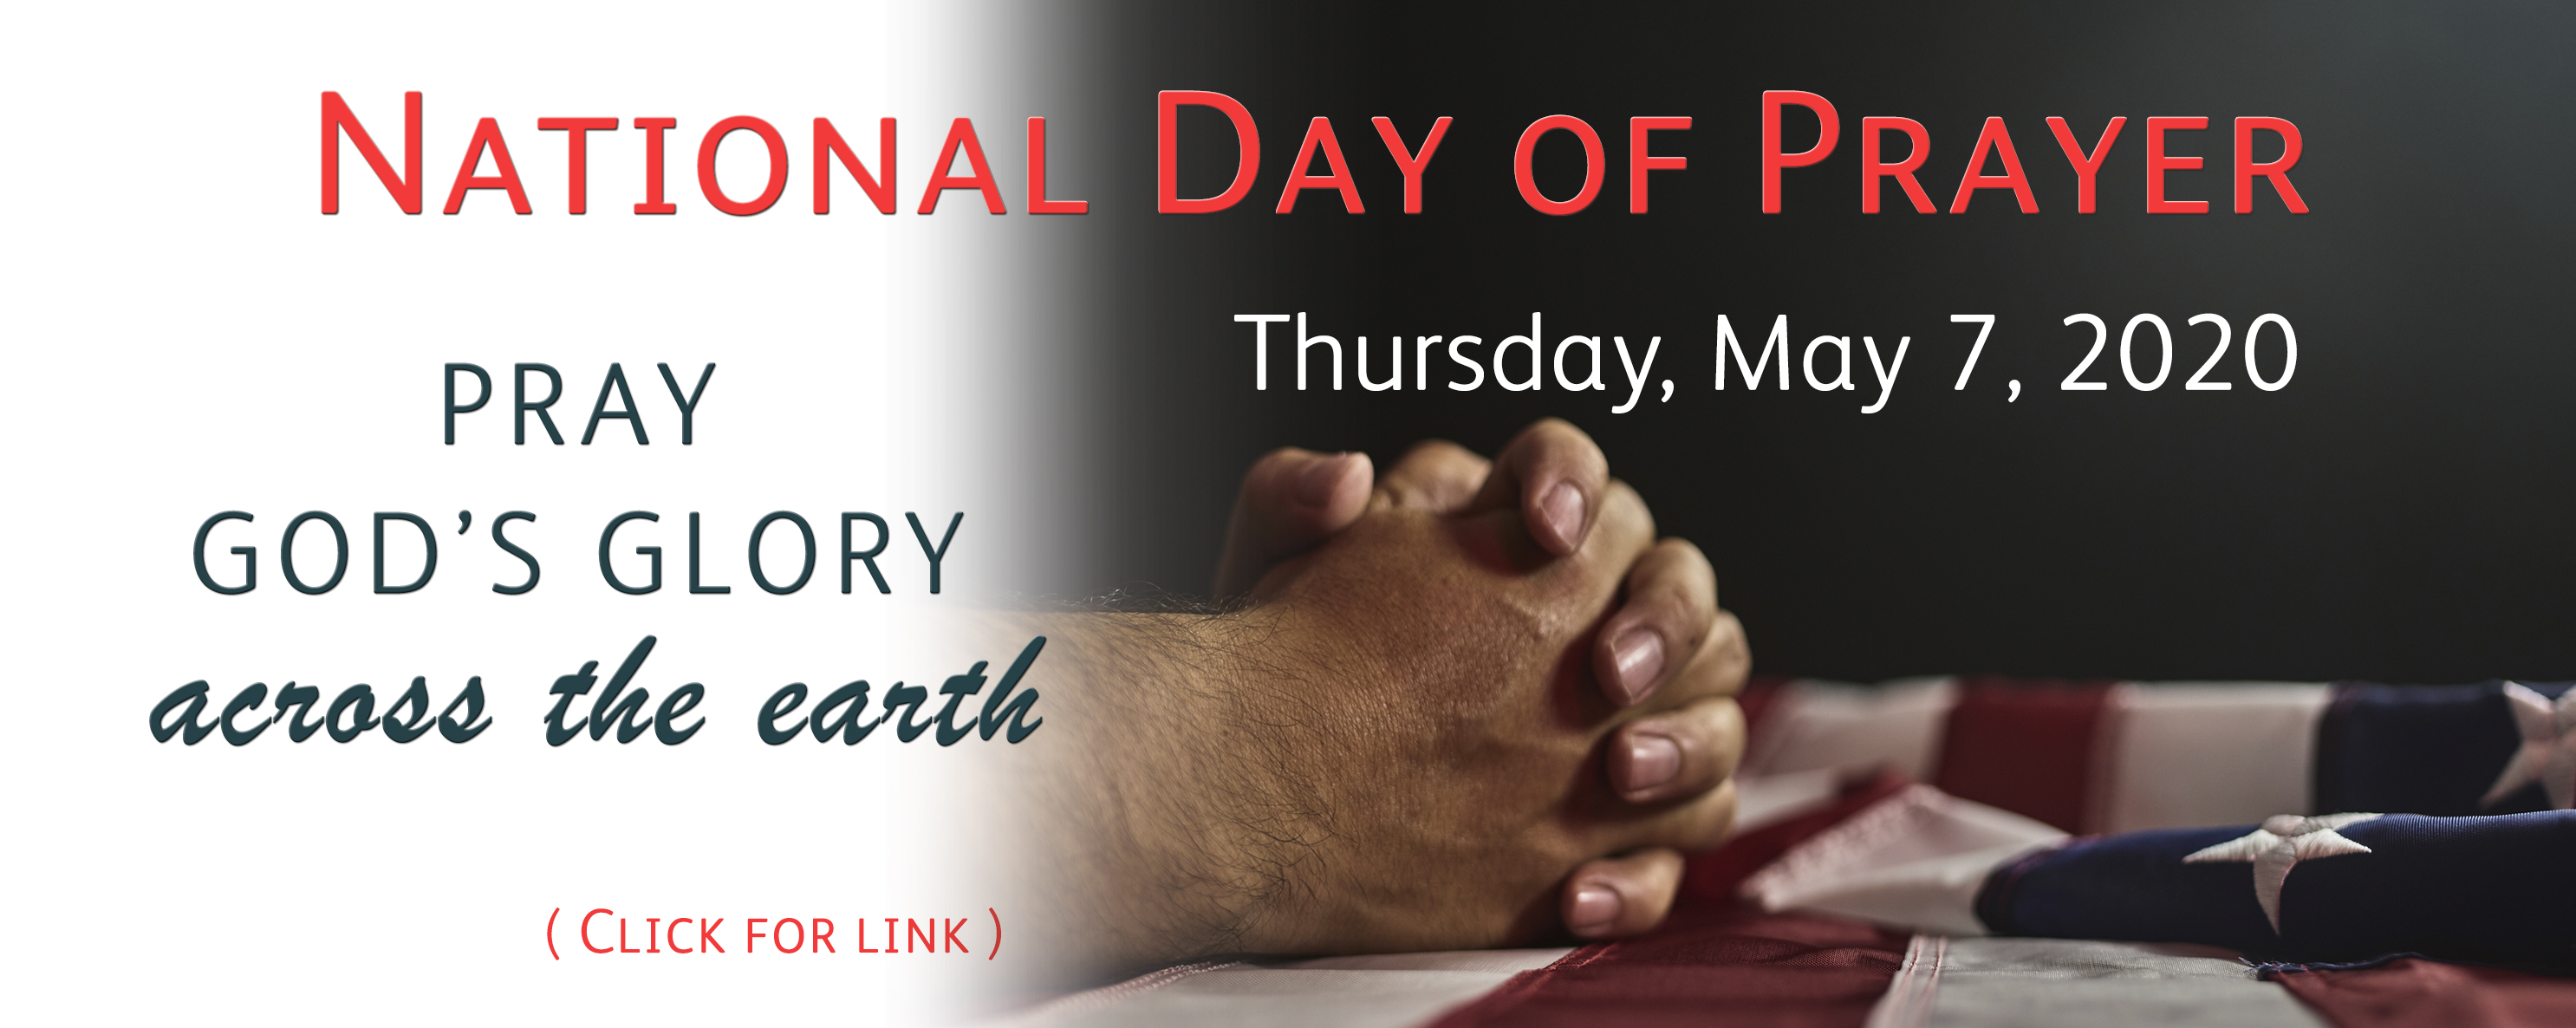 National Day of prayer 2020 image